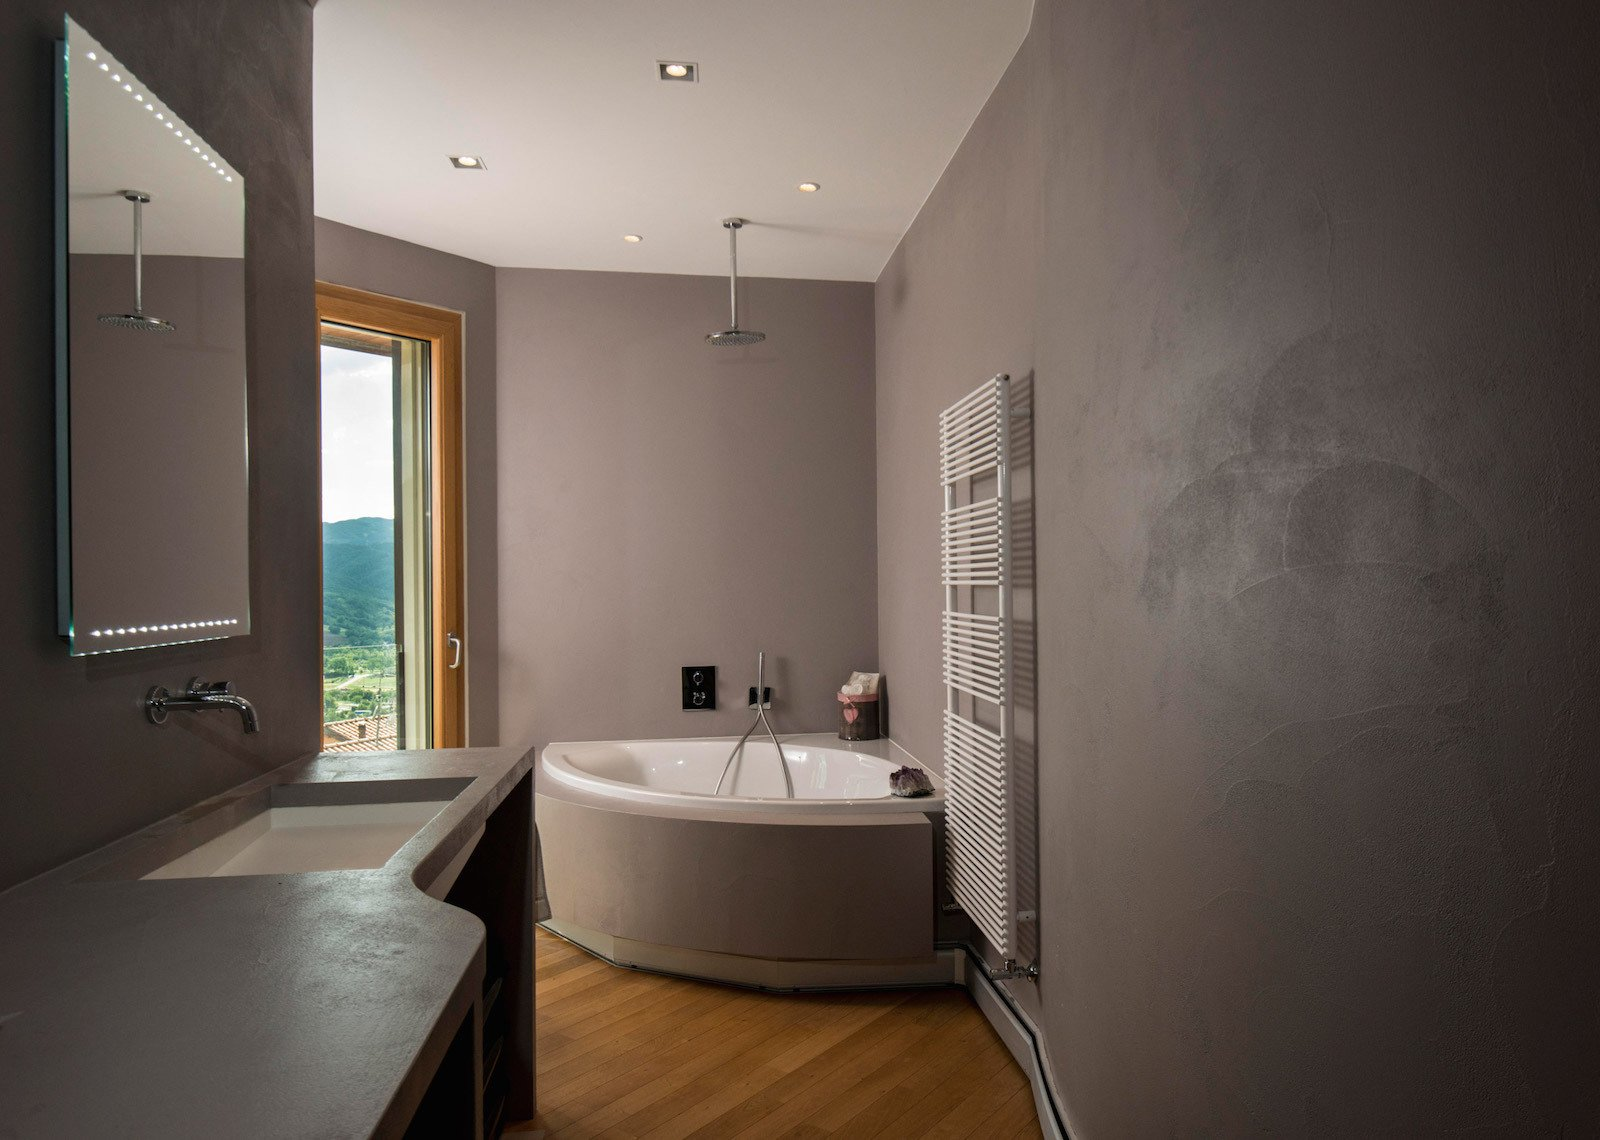 Bath Room, Medium Hardwood Floor, Alcove Tub, Concrete Counter, Recessed Lighting, and Undermount Sink Views of the countryside can be enjoyed from the bathtub.  Photo 7 of 8 in This Octagonal Prefab in Italy Rotates a Full 360 Degrees to Follow the Sun